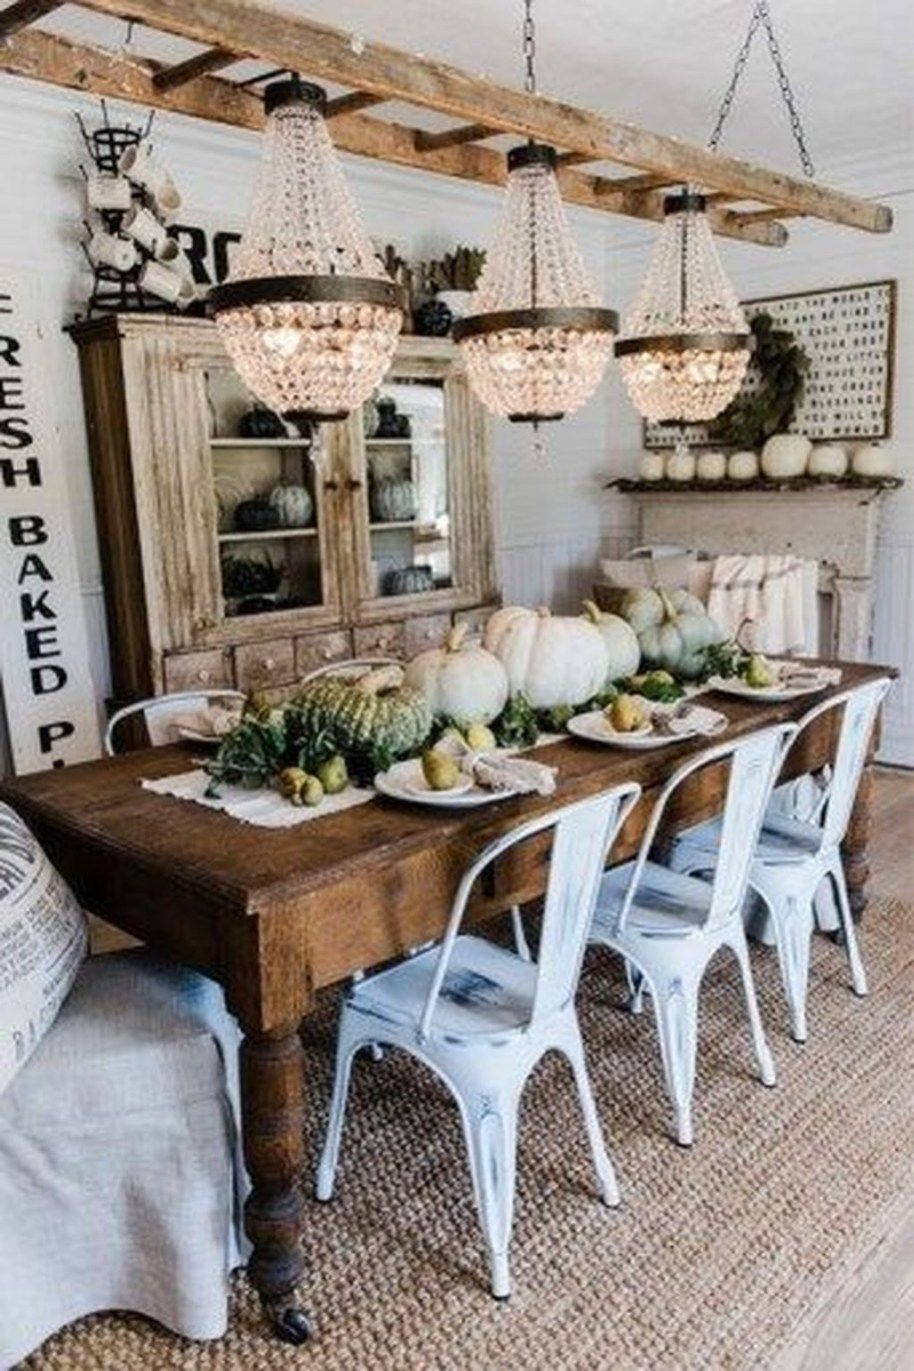 Stunning traditional farmhouse decor ideas for your entire house farm tables also best home images in rustic furniture bed rh pinterest